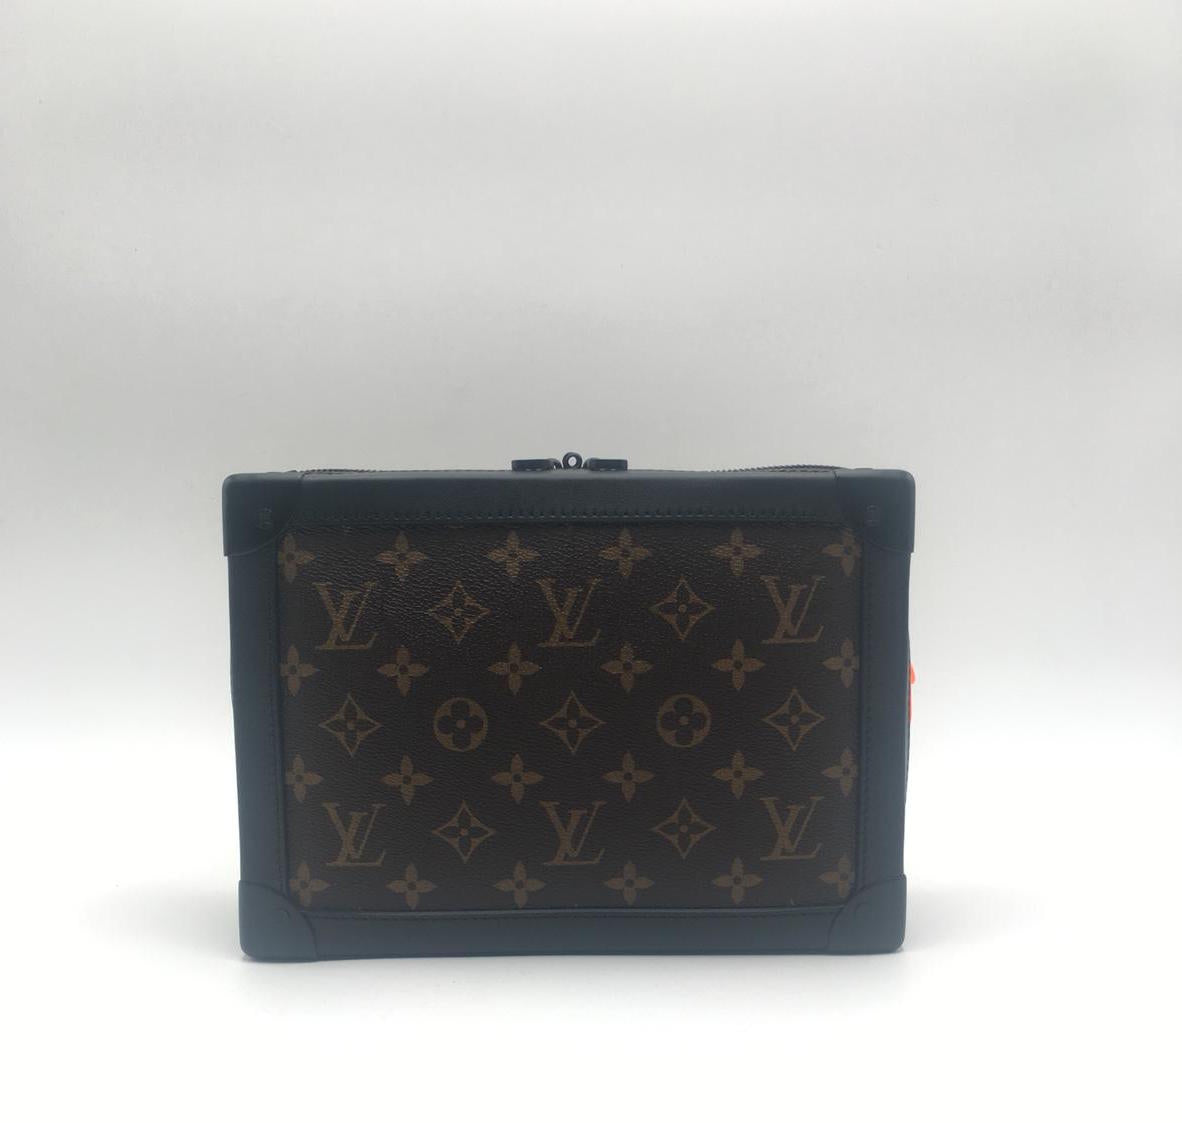 Louis Vuitton Monogram Soft Trunk Cross Body Bag - The-Collectory 01433f4f8197a